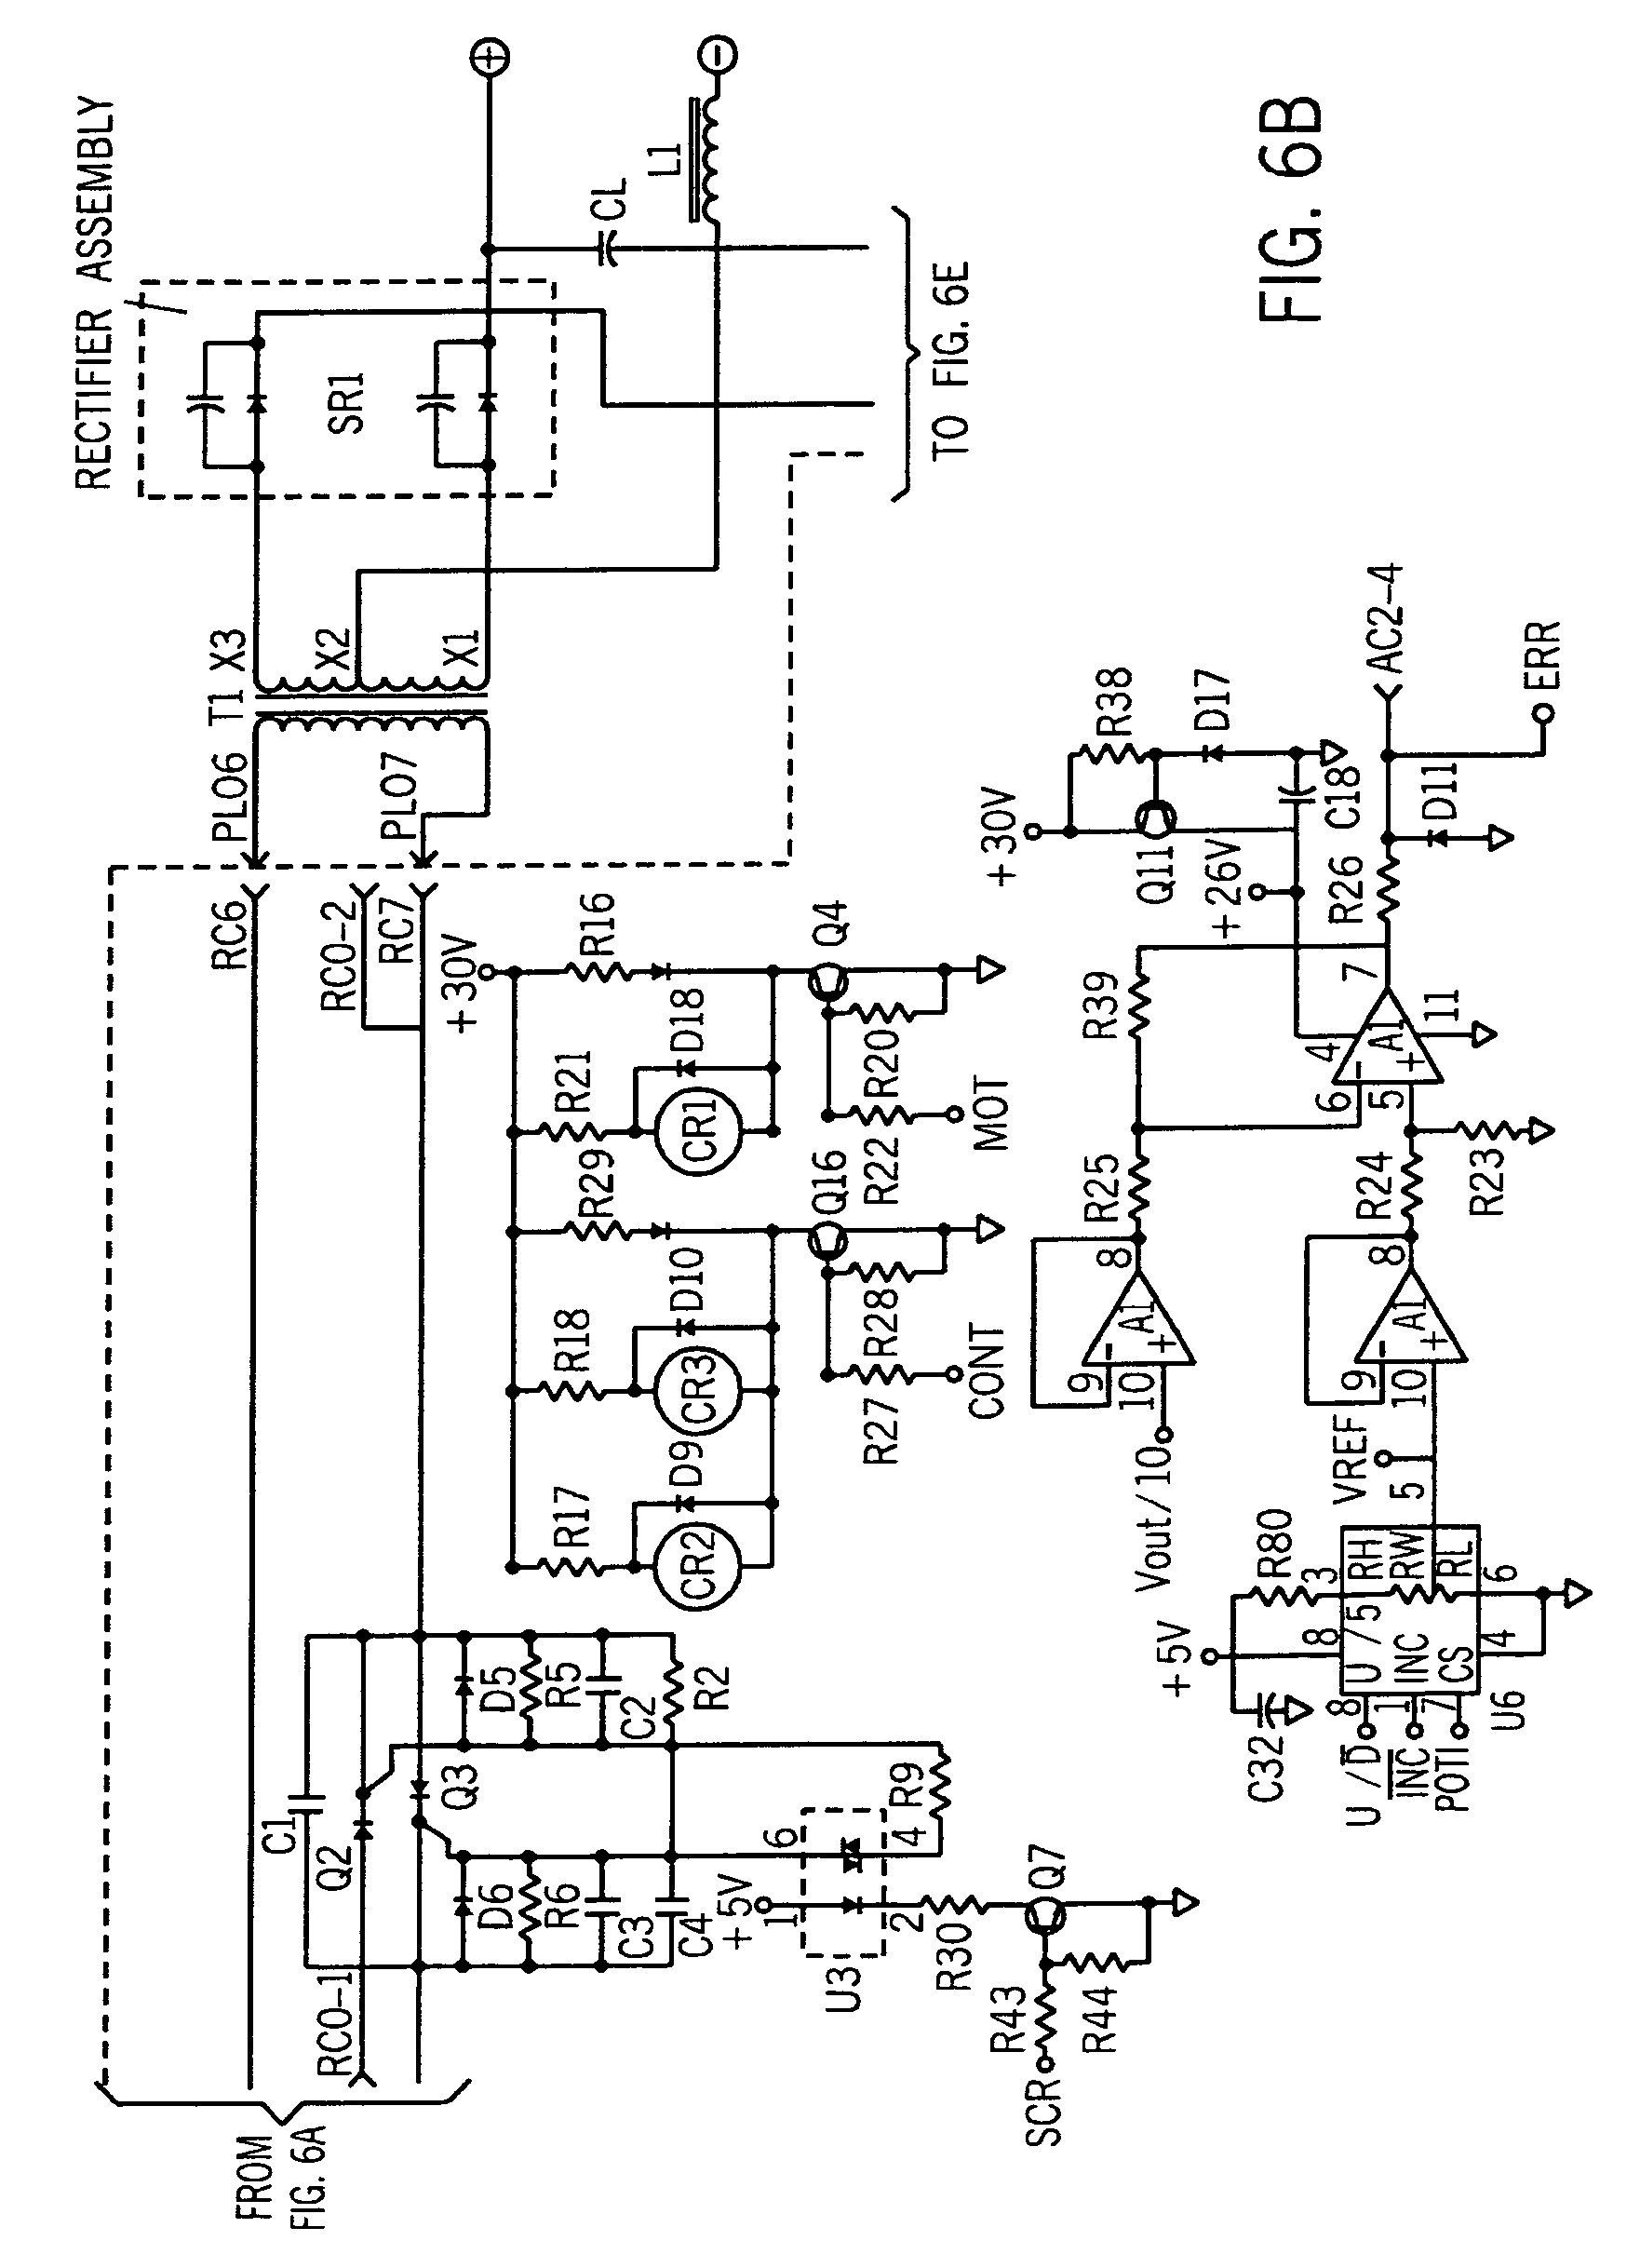 hobart dishwasher wiring diagram 17 2 primarkin nl u2022 rh 17 2 primarkin nl hobart dishwasher am14 wiring diagram hobart dishwasher crs66a wiring diagram